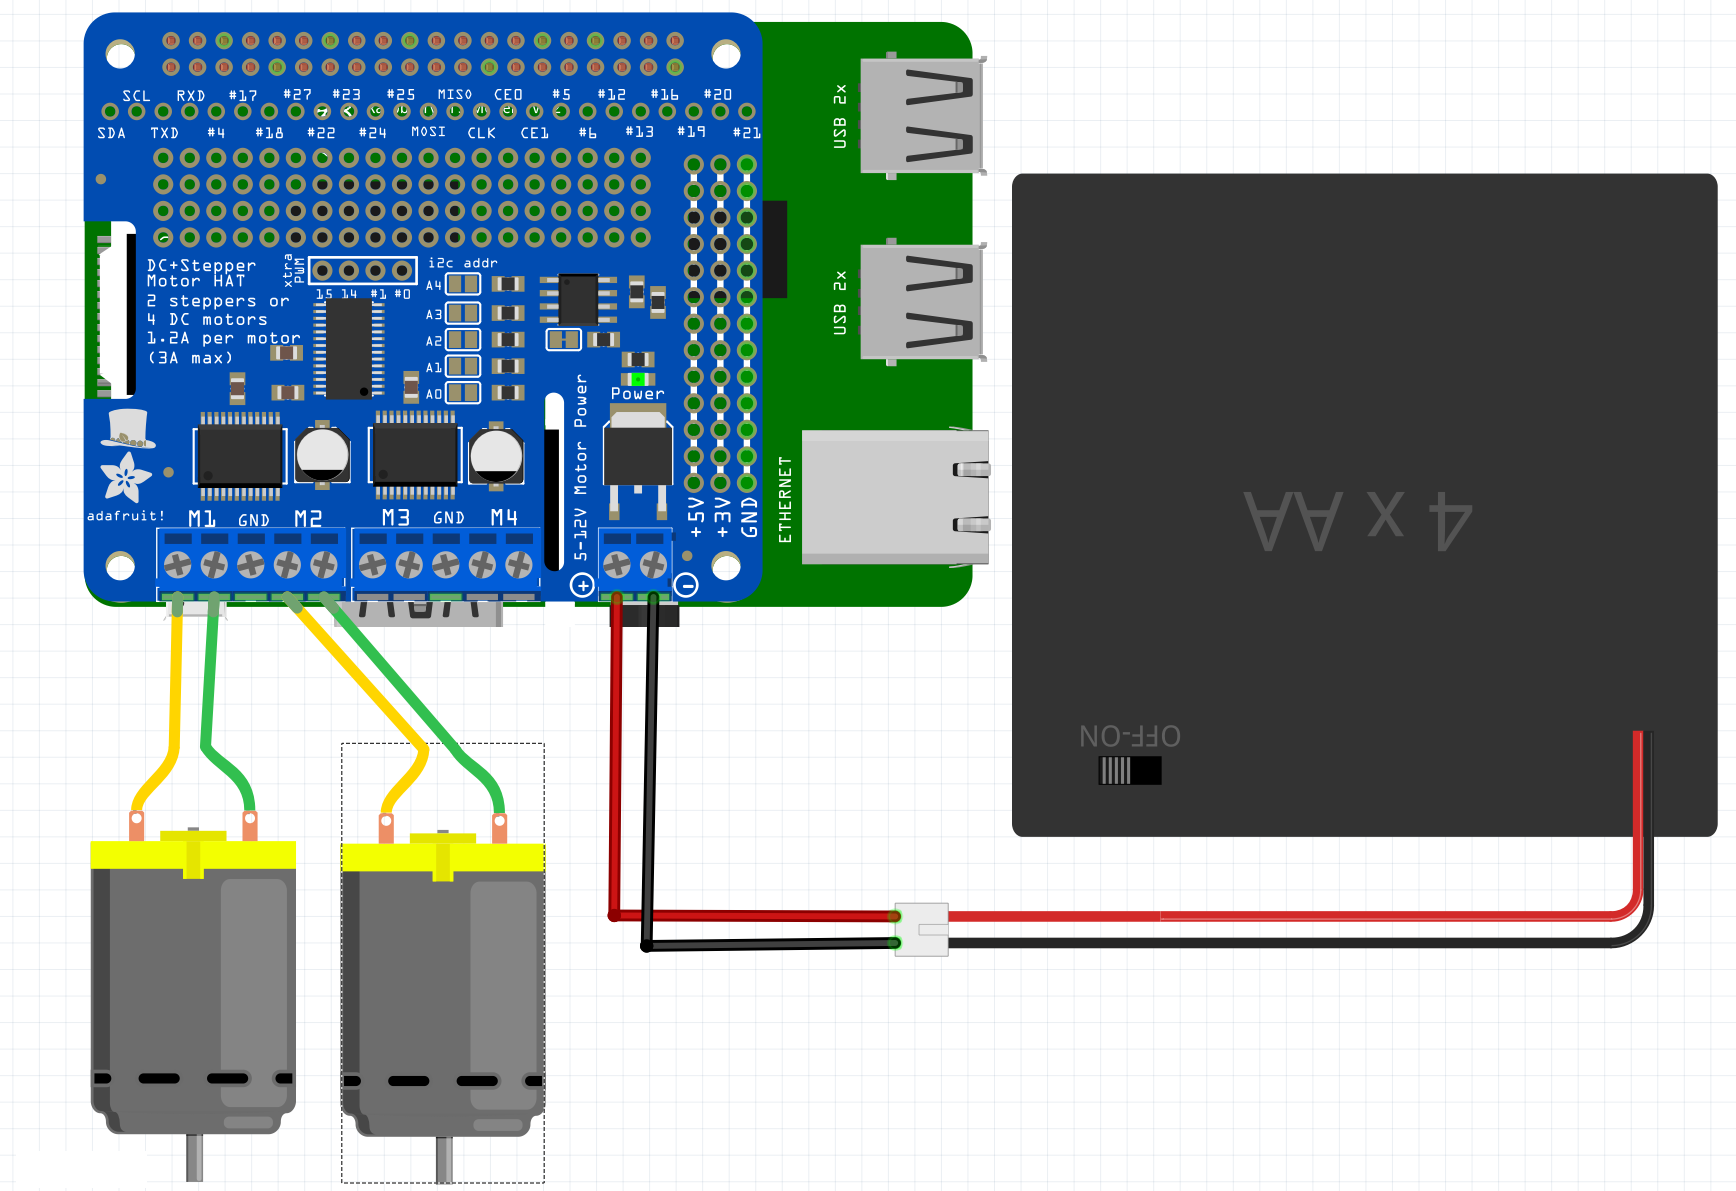 Does Anyone Know Where I Might Be Able To Find Wiring Diagrams Online